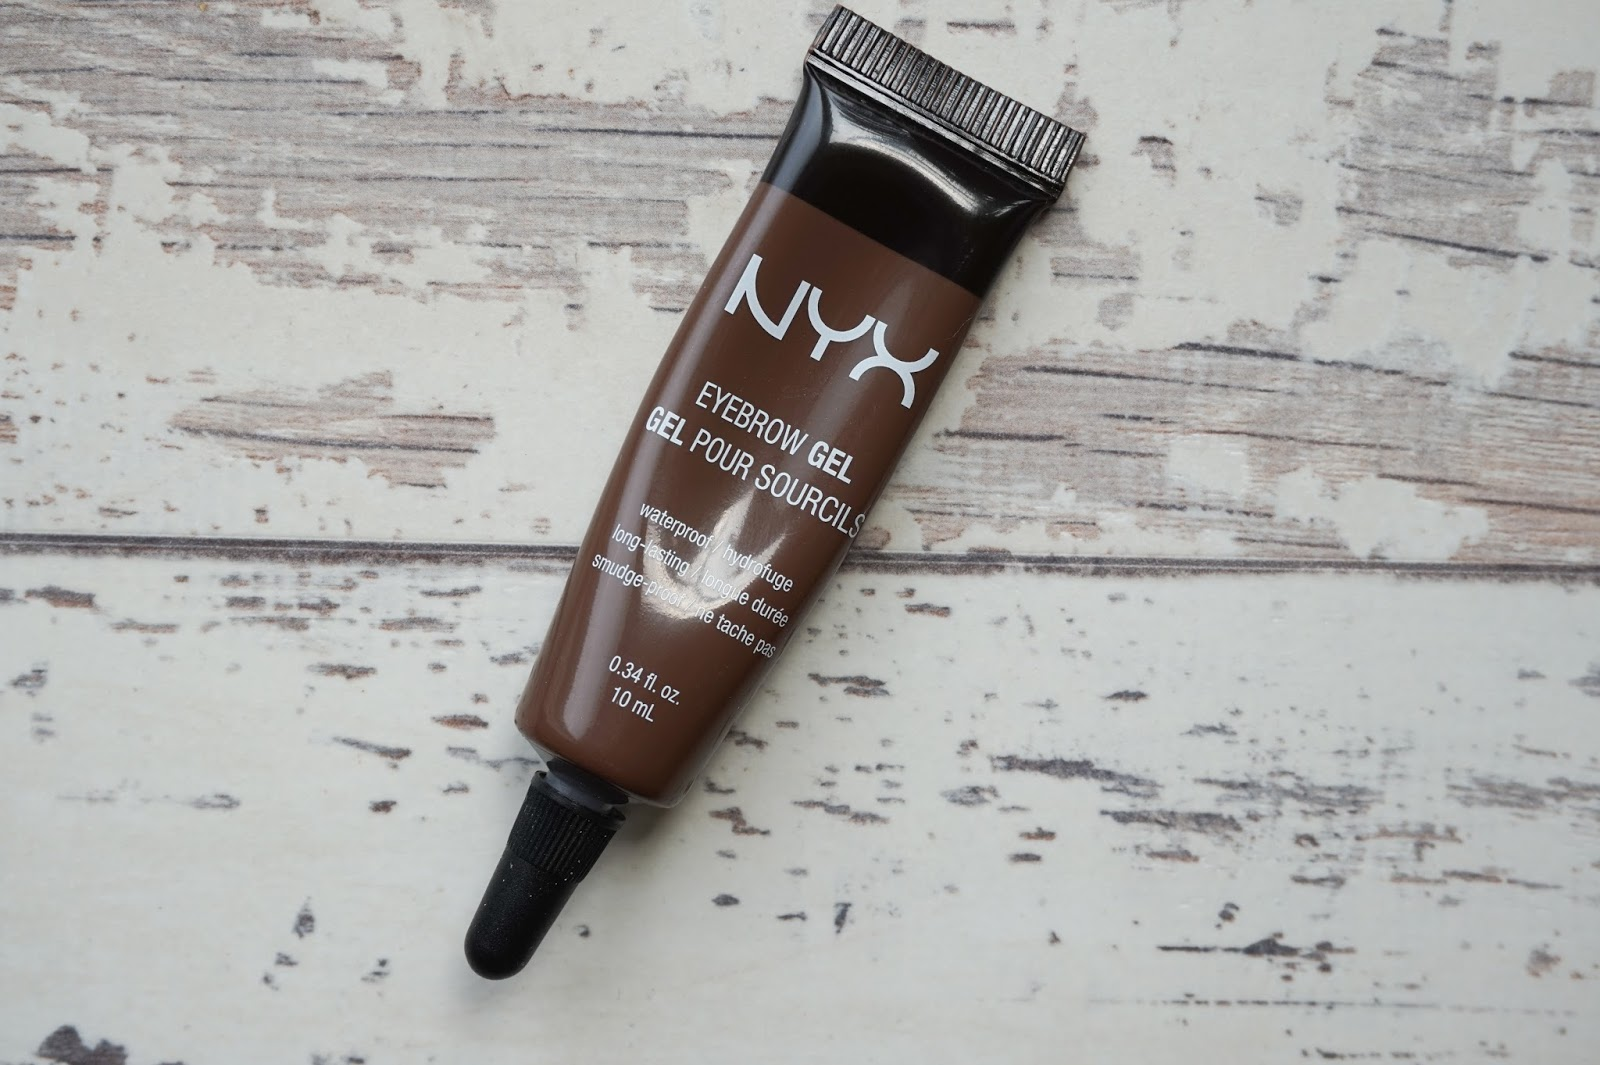 EYEBROW GEL IN ESPRESSO discoveriesofself blog swatches review nyx uk cosmetics